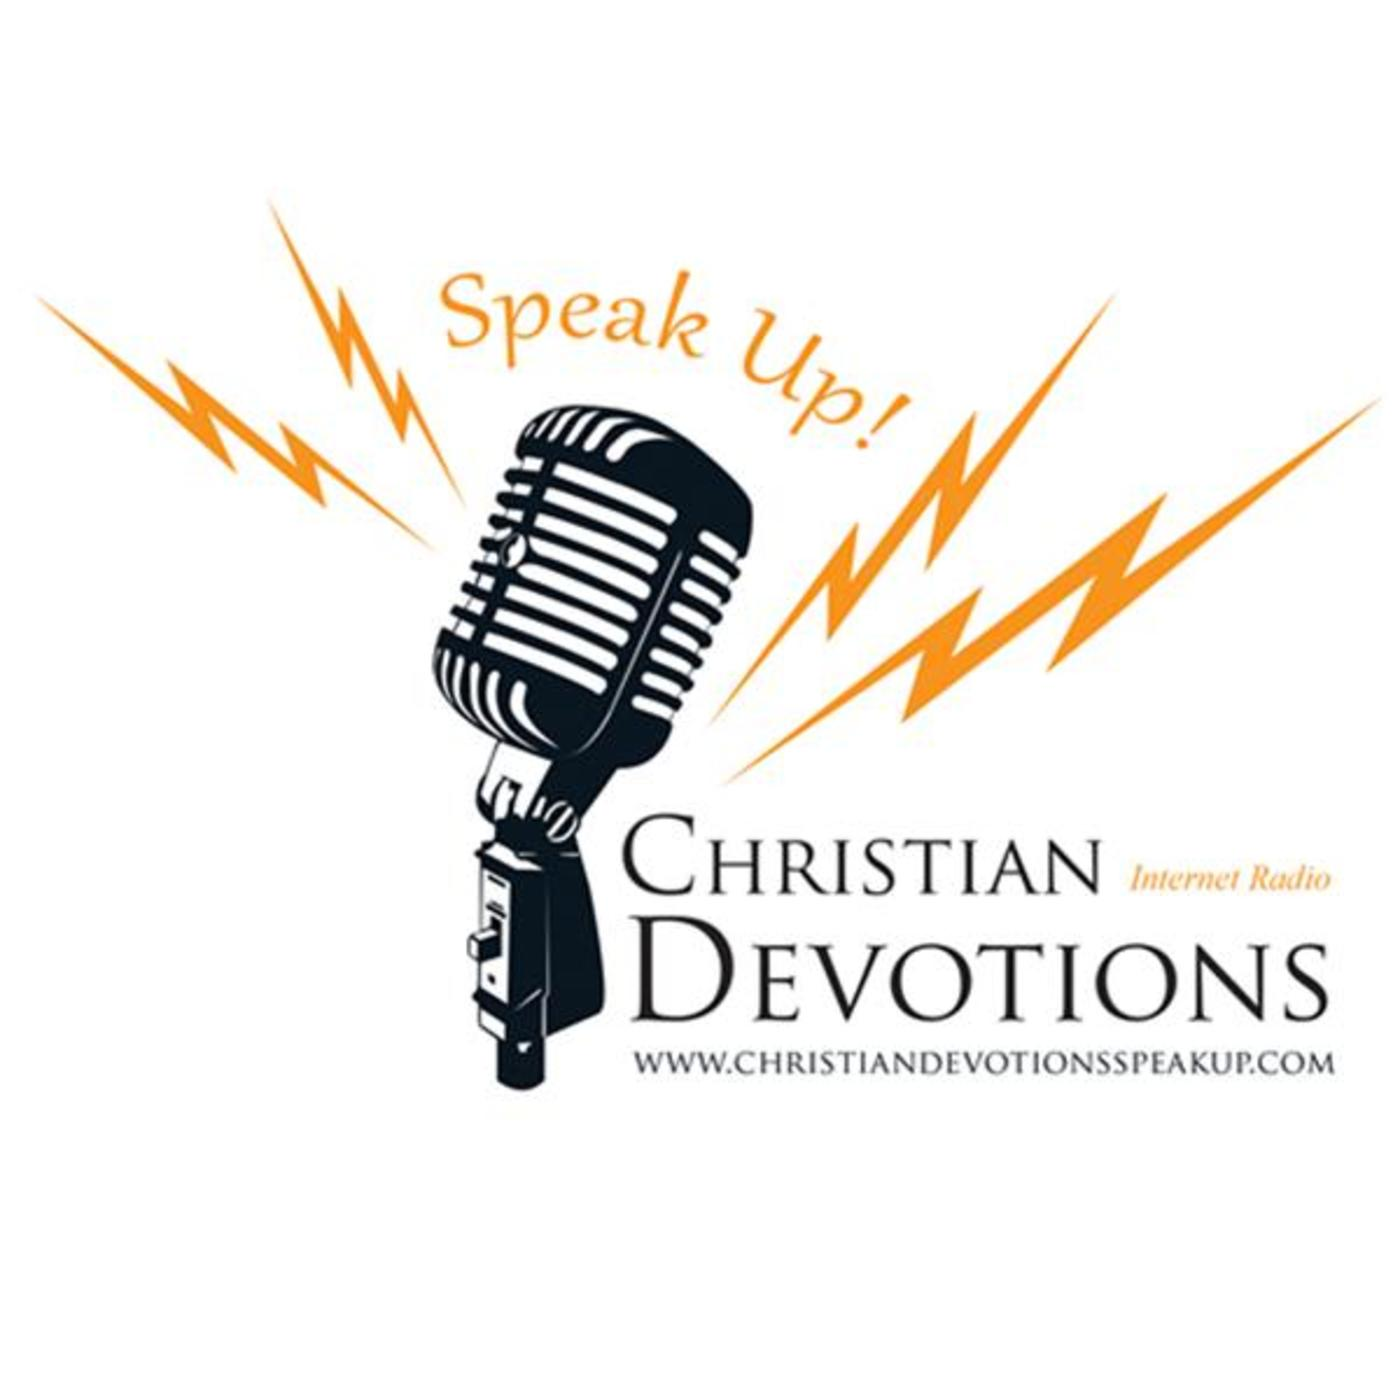 Christian Devotions SPEAK UP!